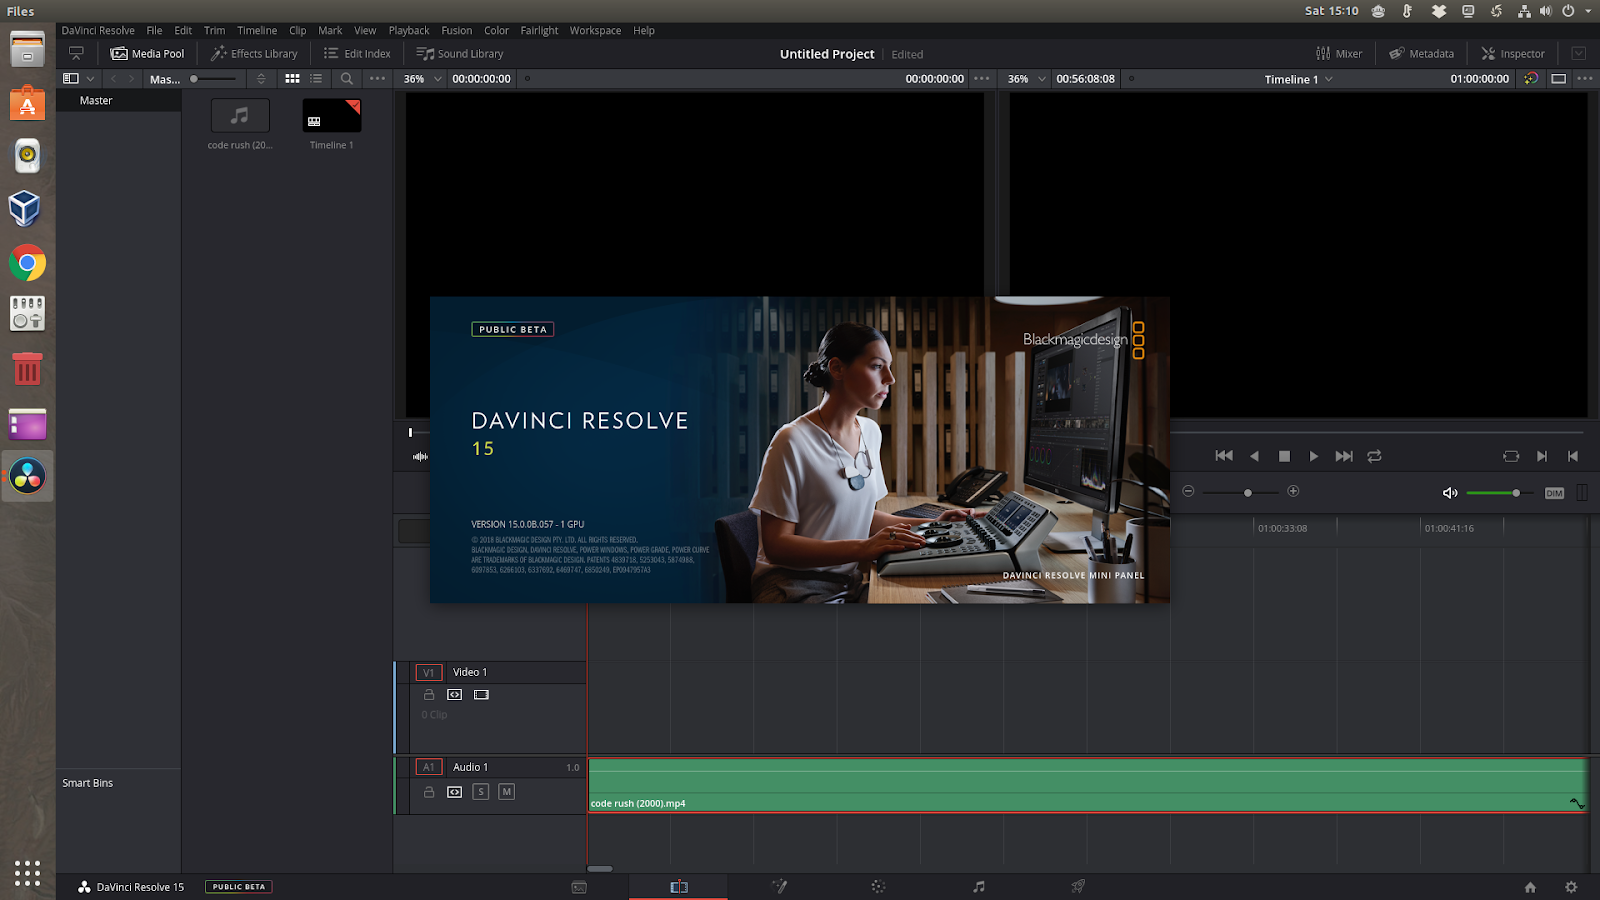 How To Install DaVinci Resolve 16 Or 16 1 Beta In Ubuntu